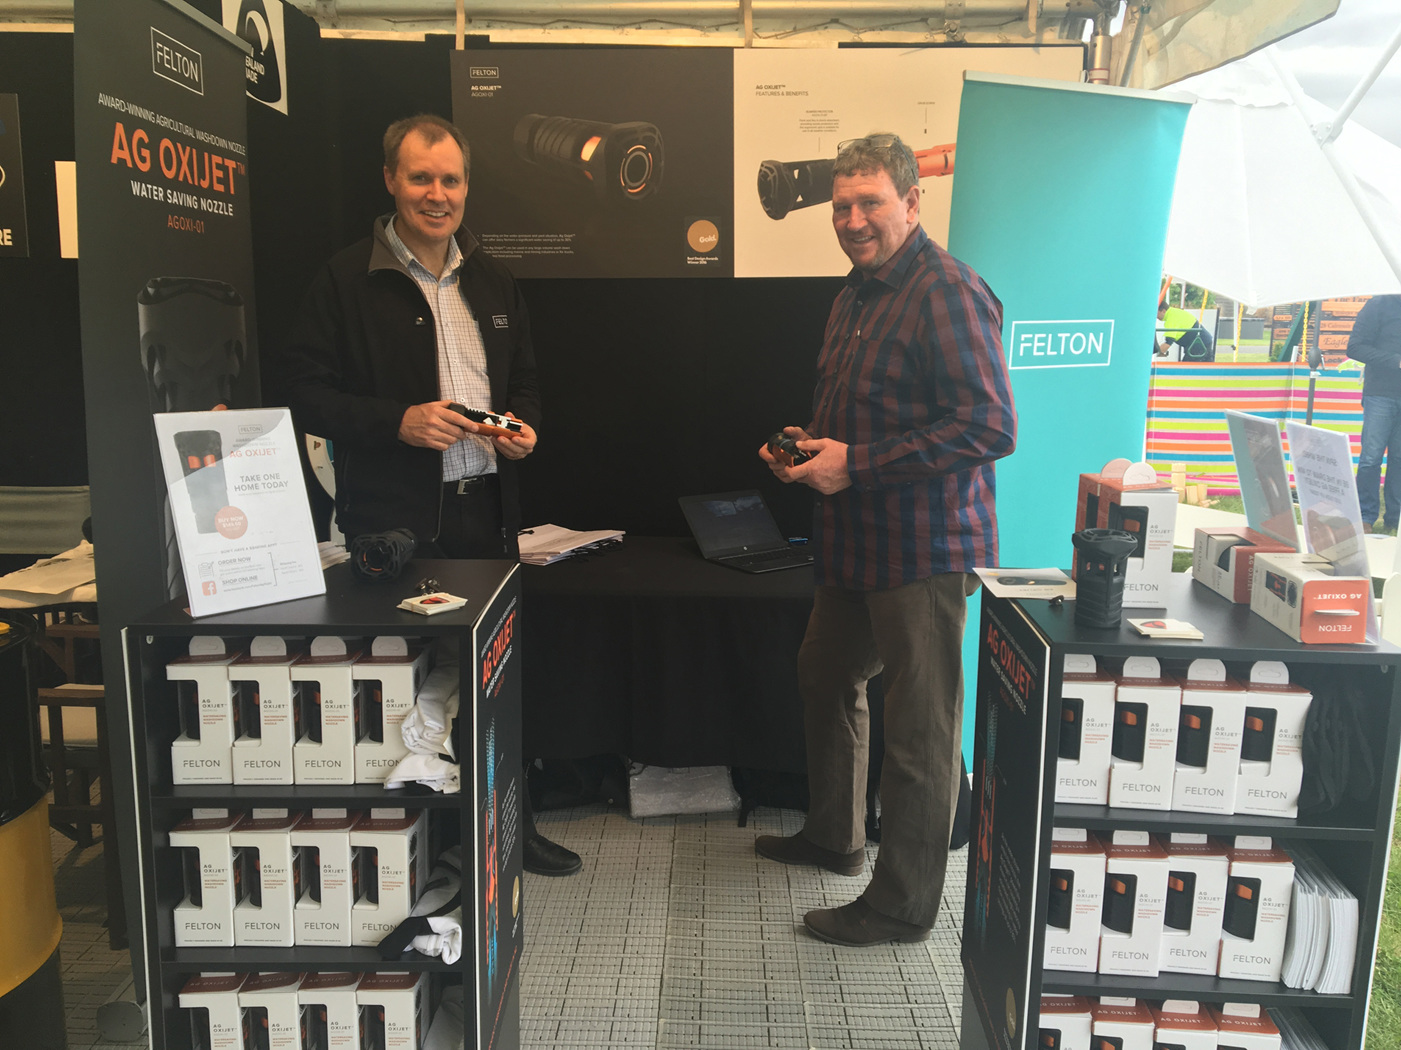 Roger and Mal from Felton with their award-winning agricultural washdown nozzle, Ag Oxijet